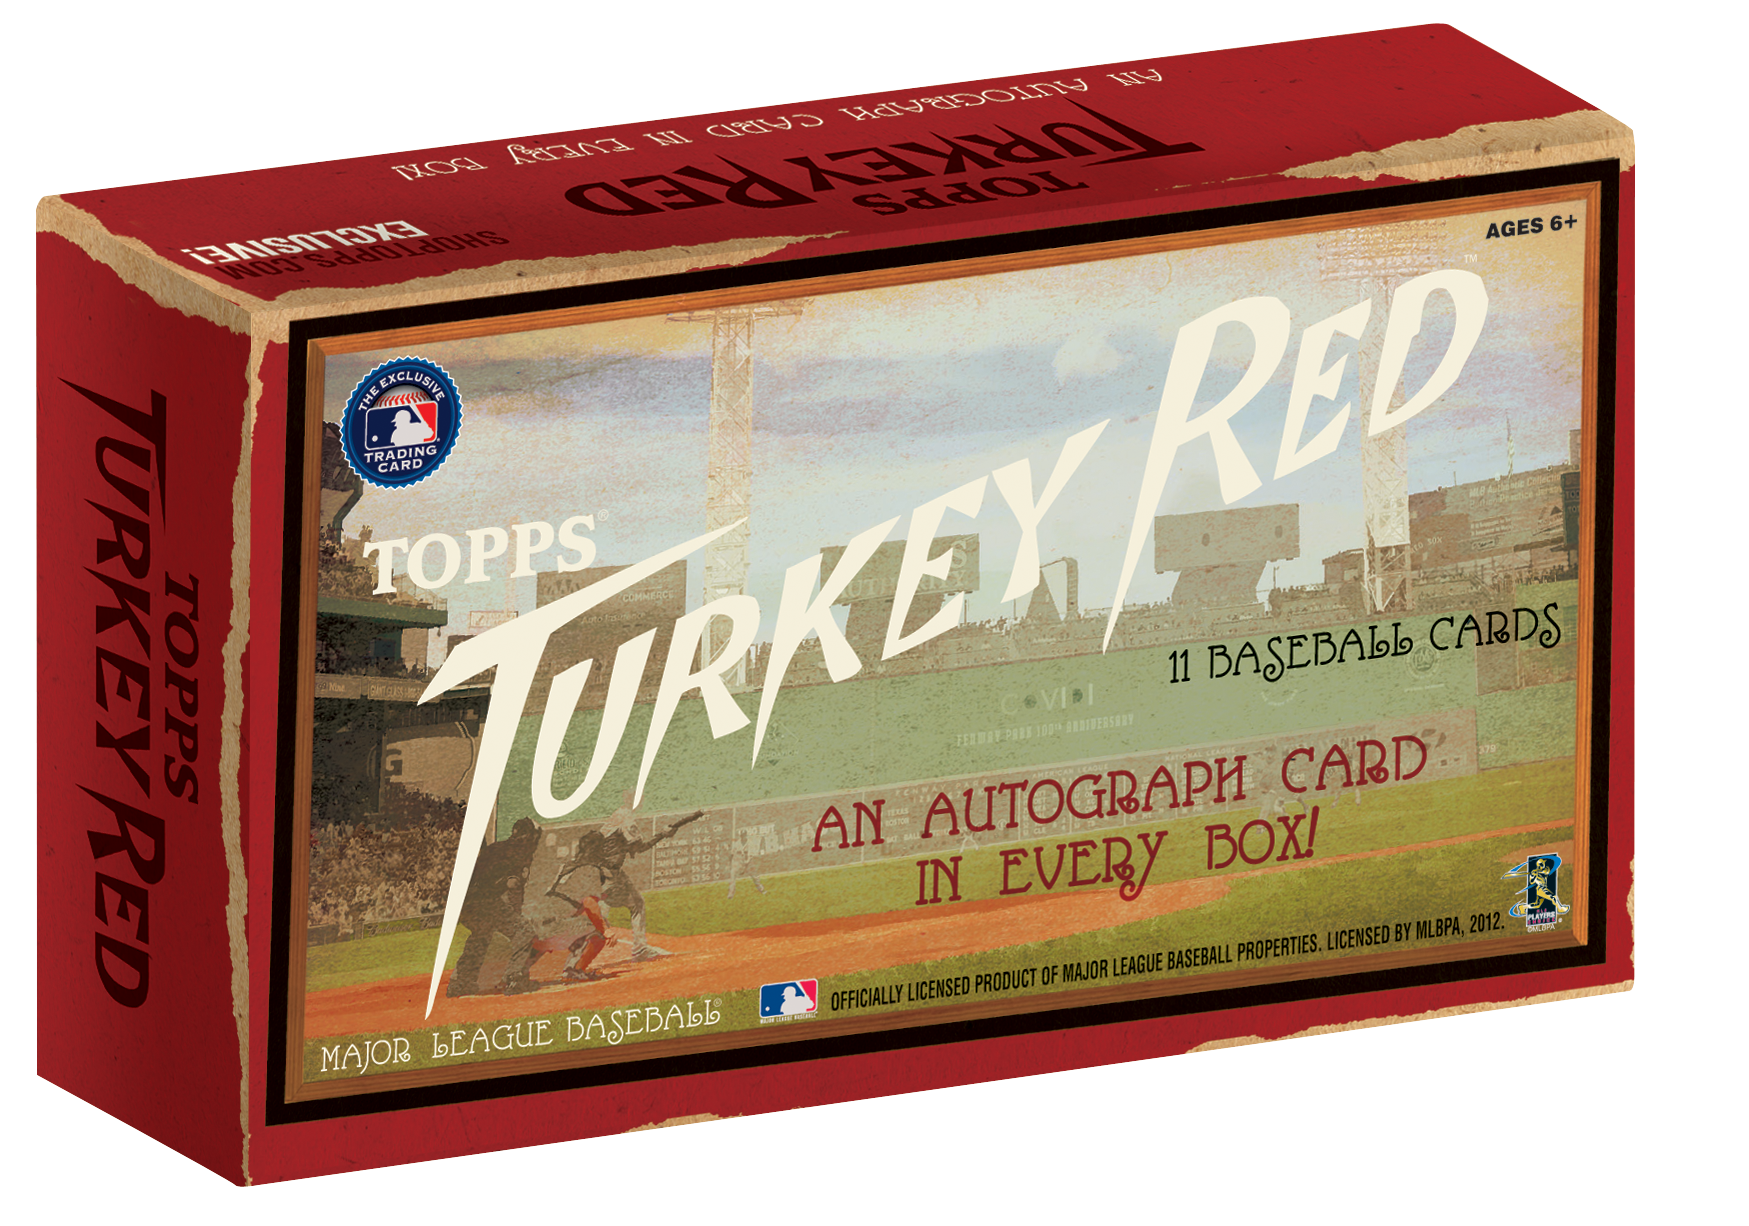 Box of cards png. First look topps turkey